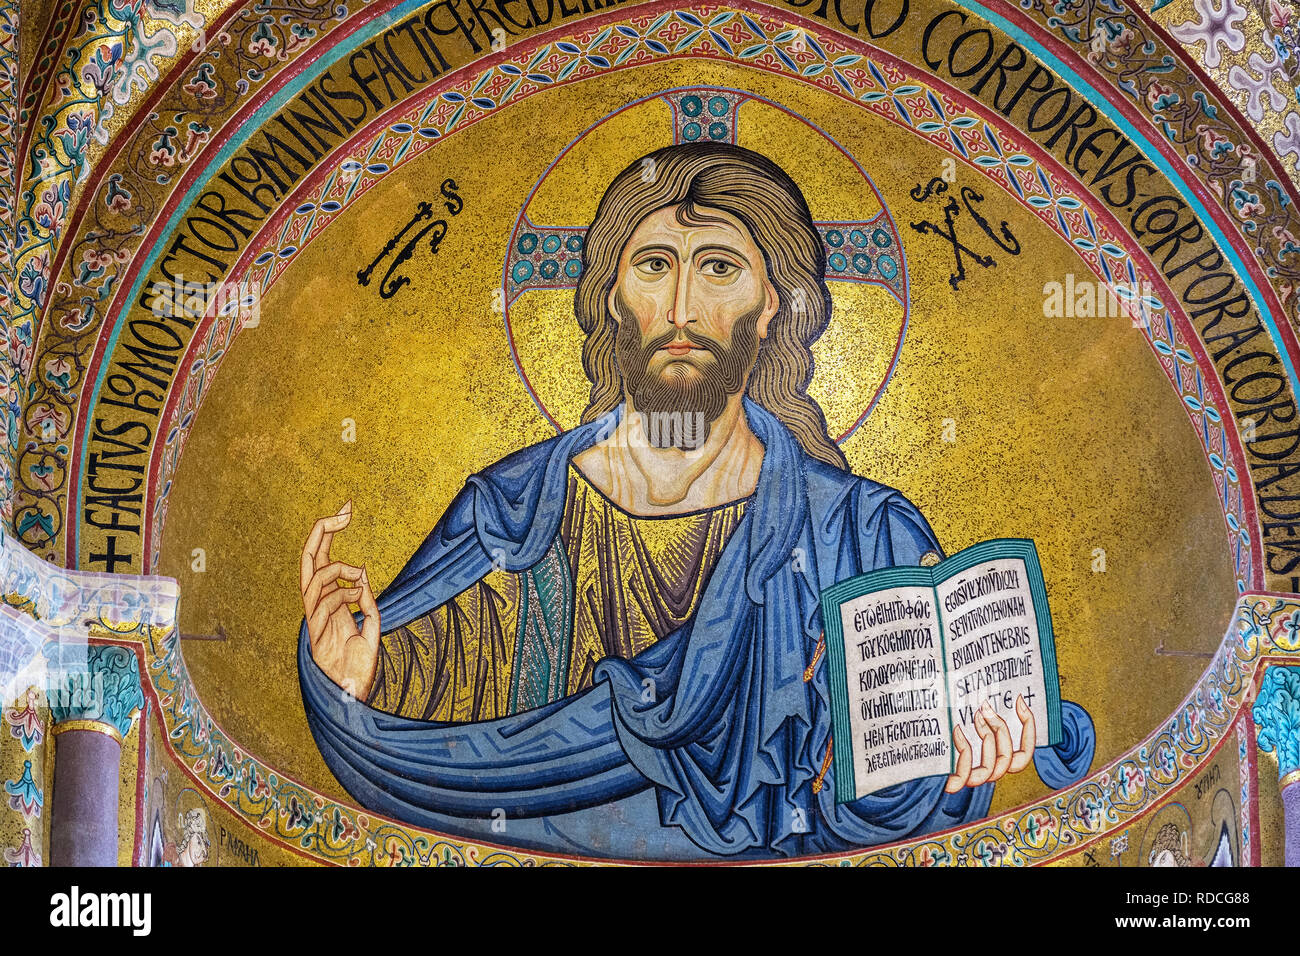 The Christ Pantocrator mosaic in Cathedral San Salvatore. Cefalu, Sicily, Italy - Stock Image